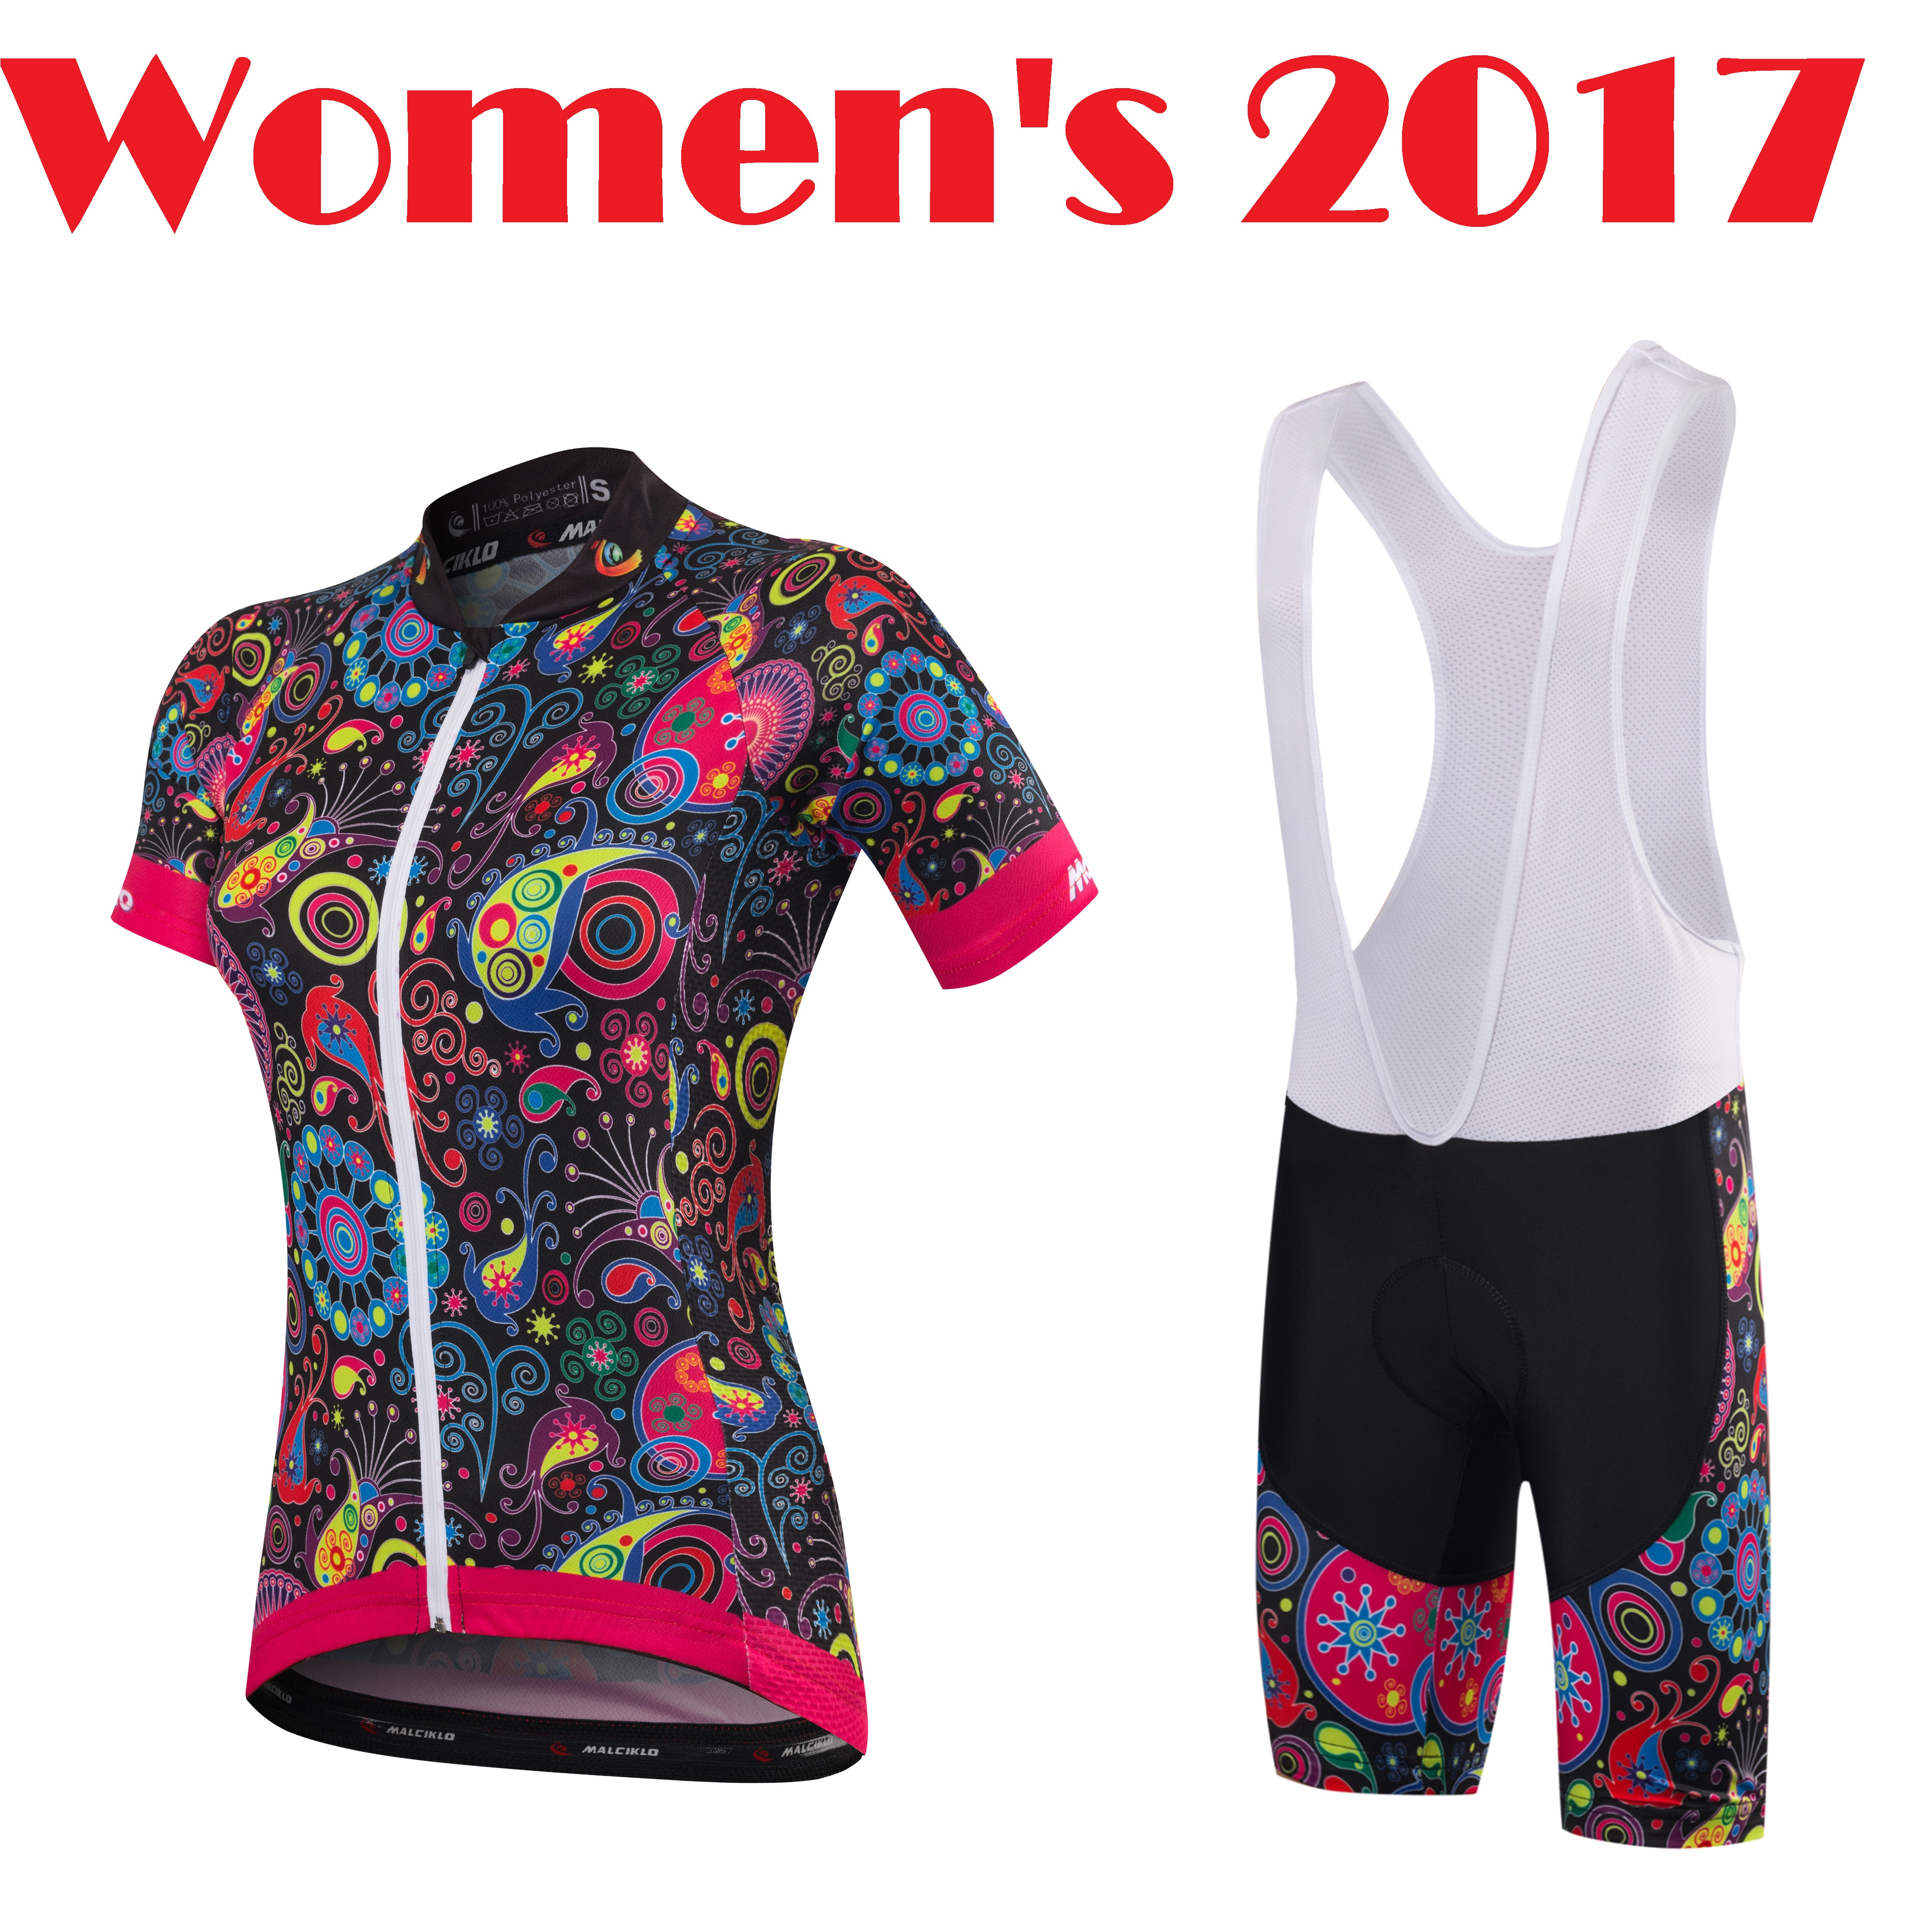 Amicable Women's Cycling Jerseys 2017 Lady Road Racing Jersey Summer Bicycle Sportswear Bike Wear Set Free Shipping Qm17dt12 With The Most Up-To-Date Equipment And Techniques